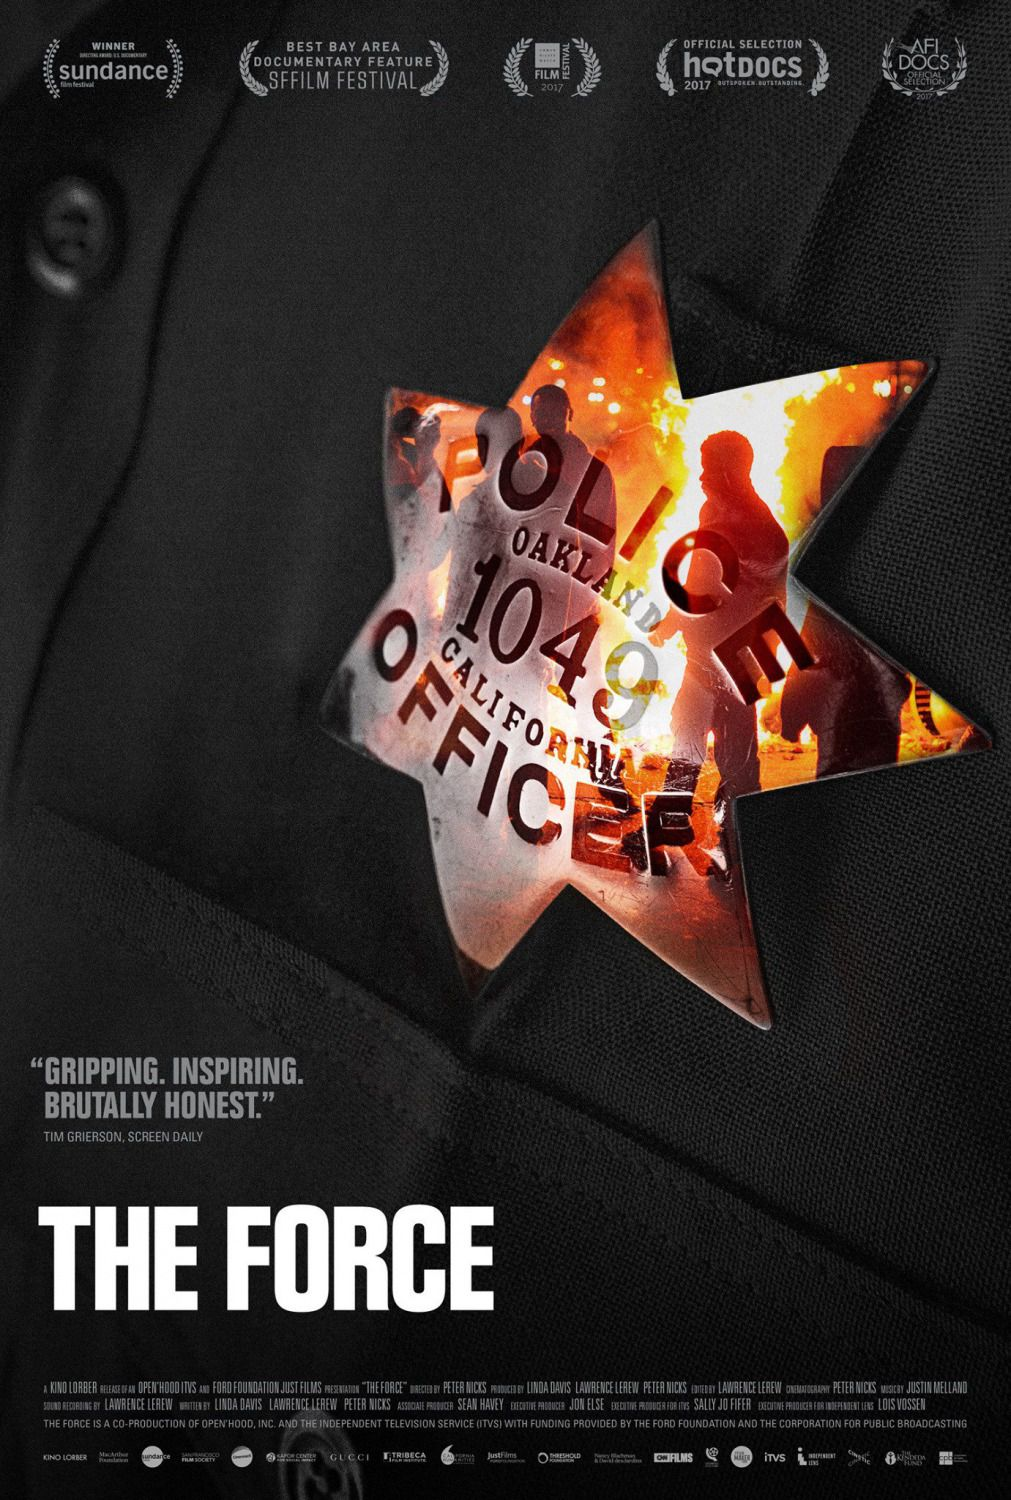 The Force - film police poster